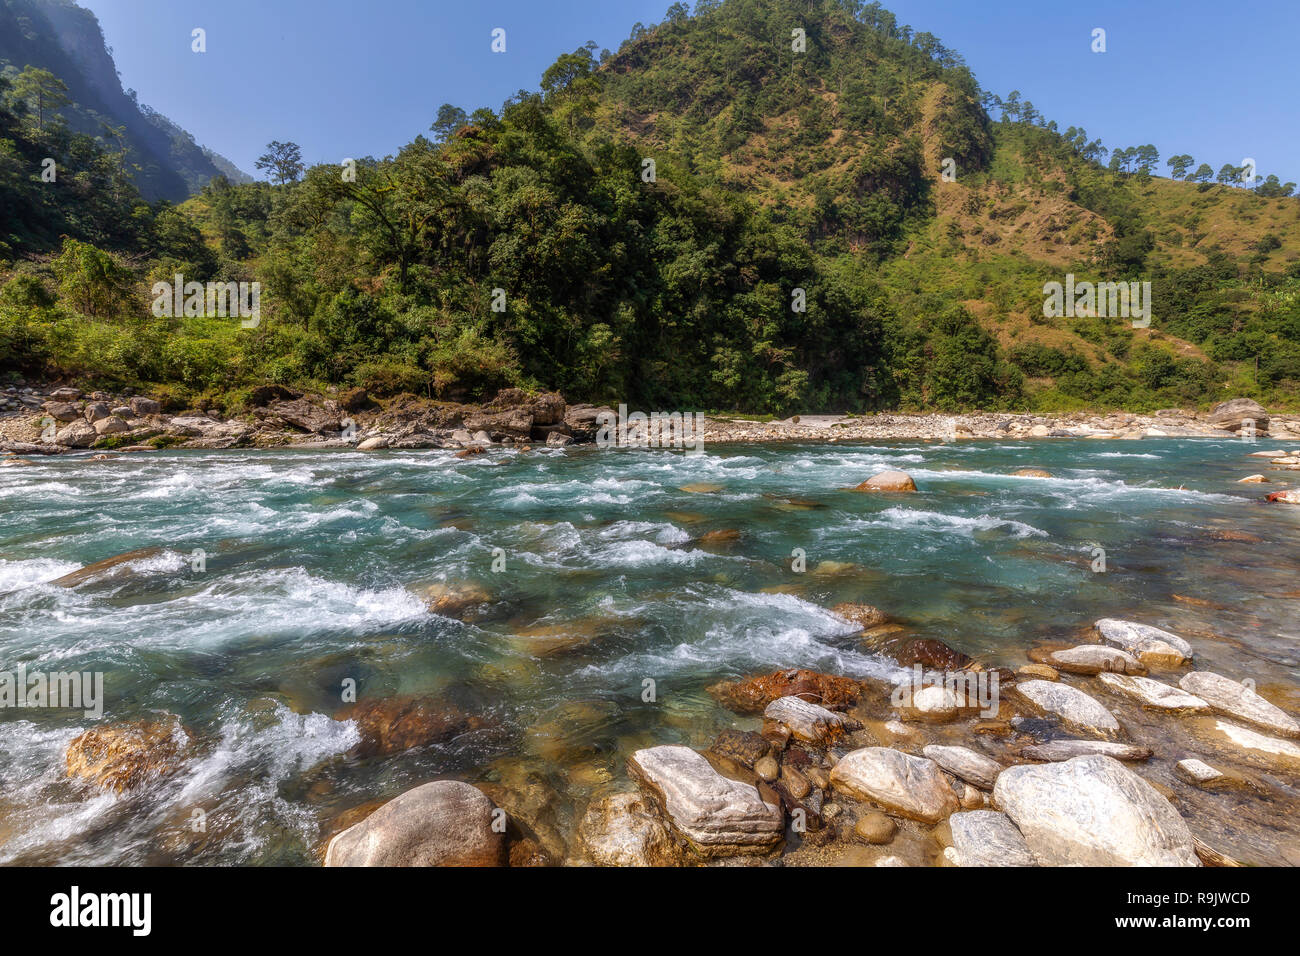 Gori Ganga river valley with scenic landscape at Munsiyari Uttarakhand India. Stock Photo